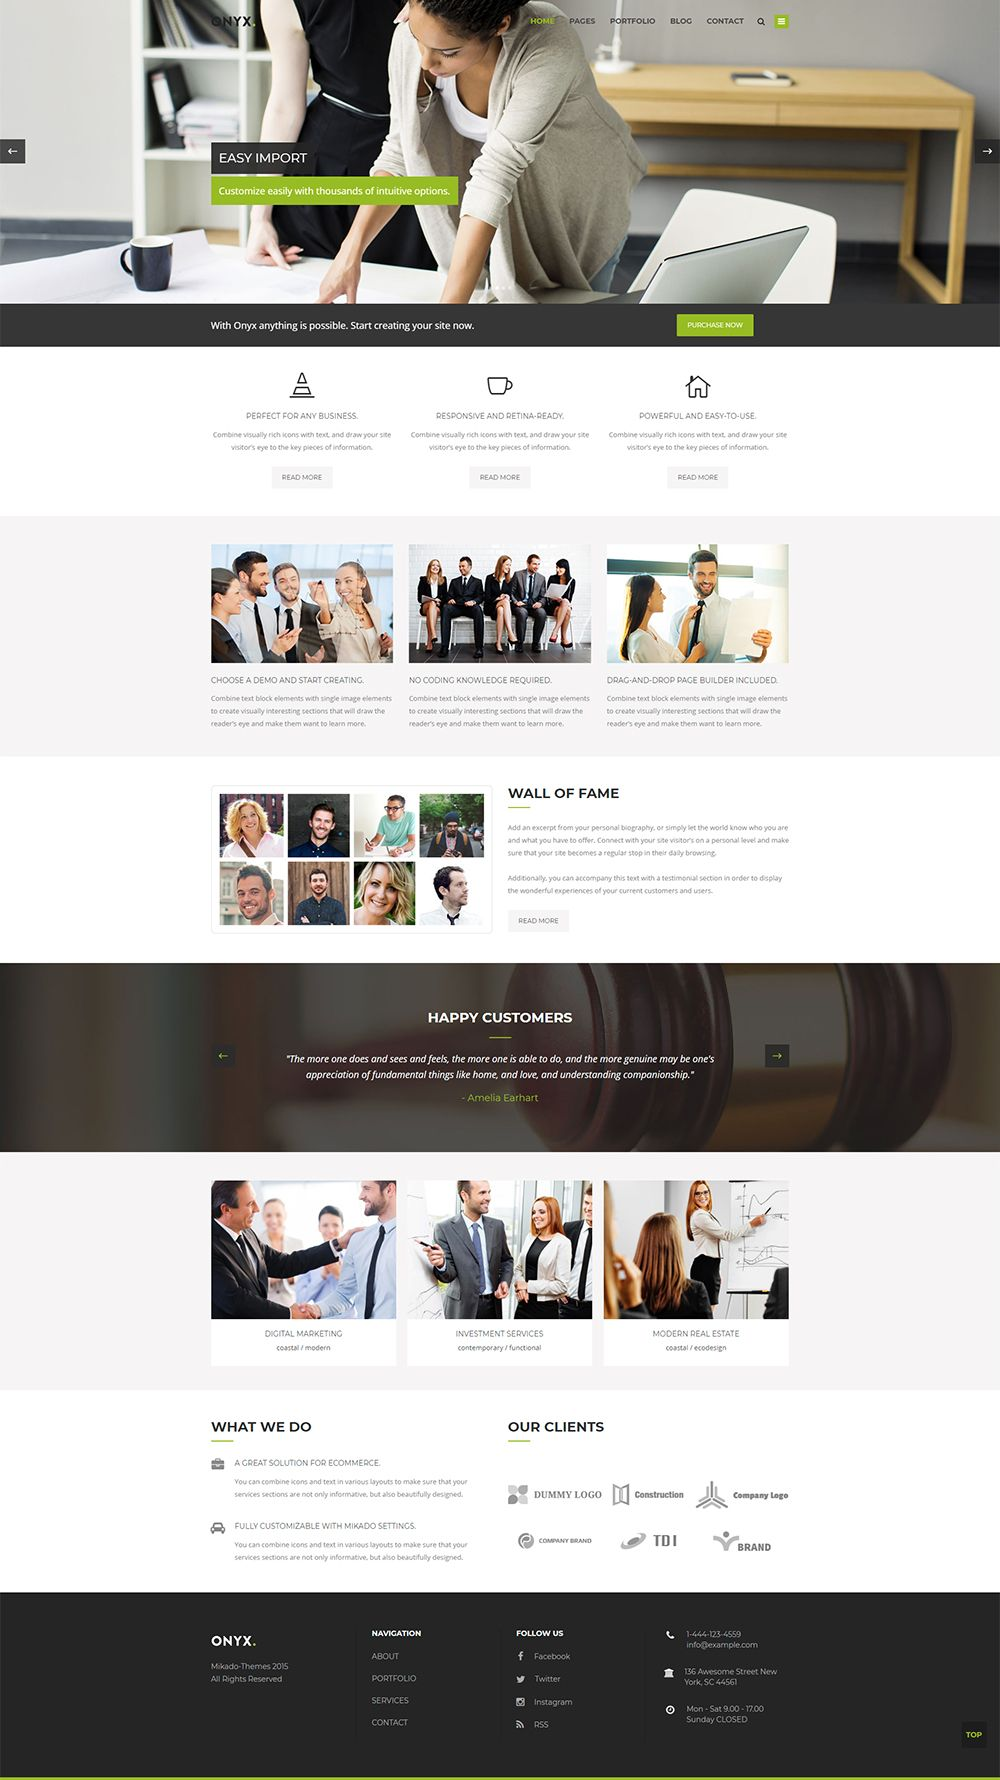 A professional website for your business is here get onyx